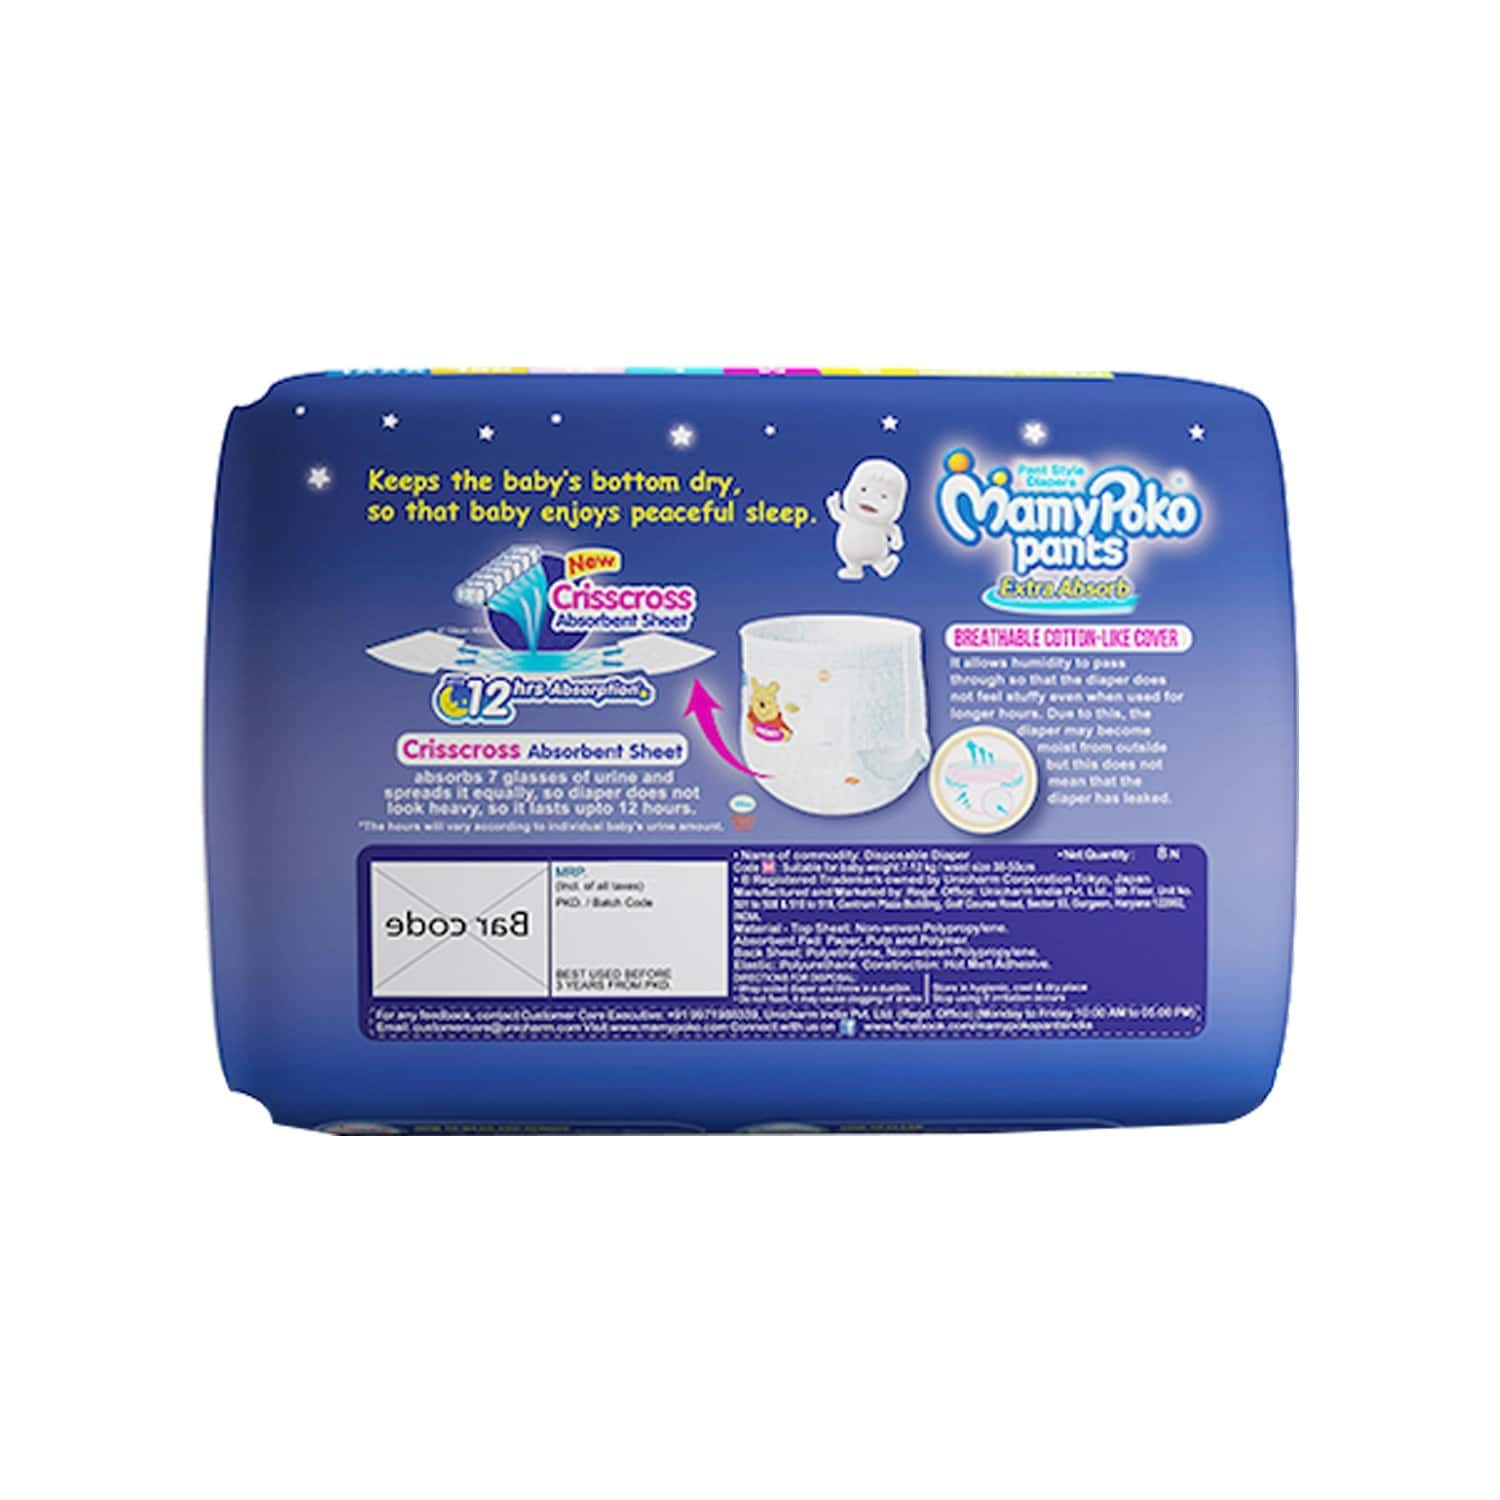 Mamypoko Pants Extra Absorb Diaper Large Size Pack Of 7